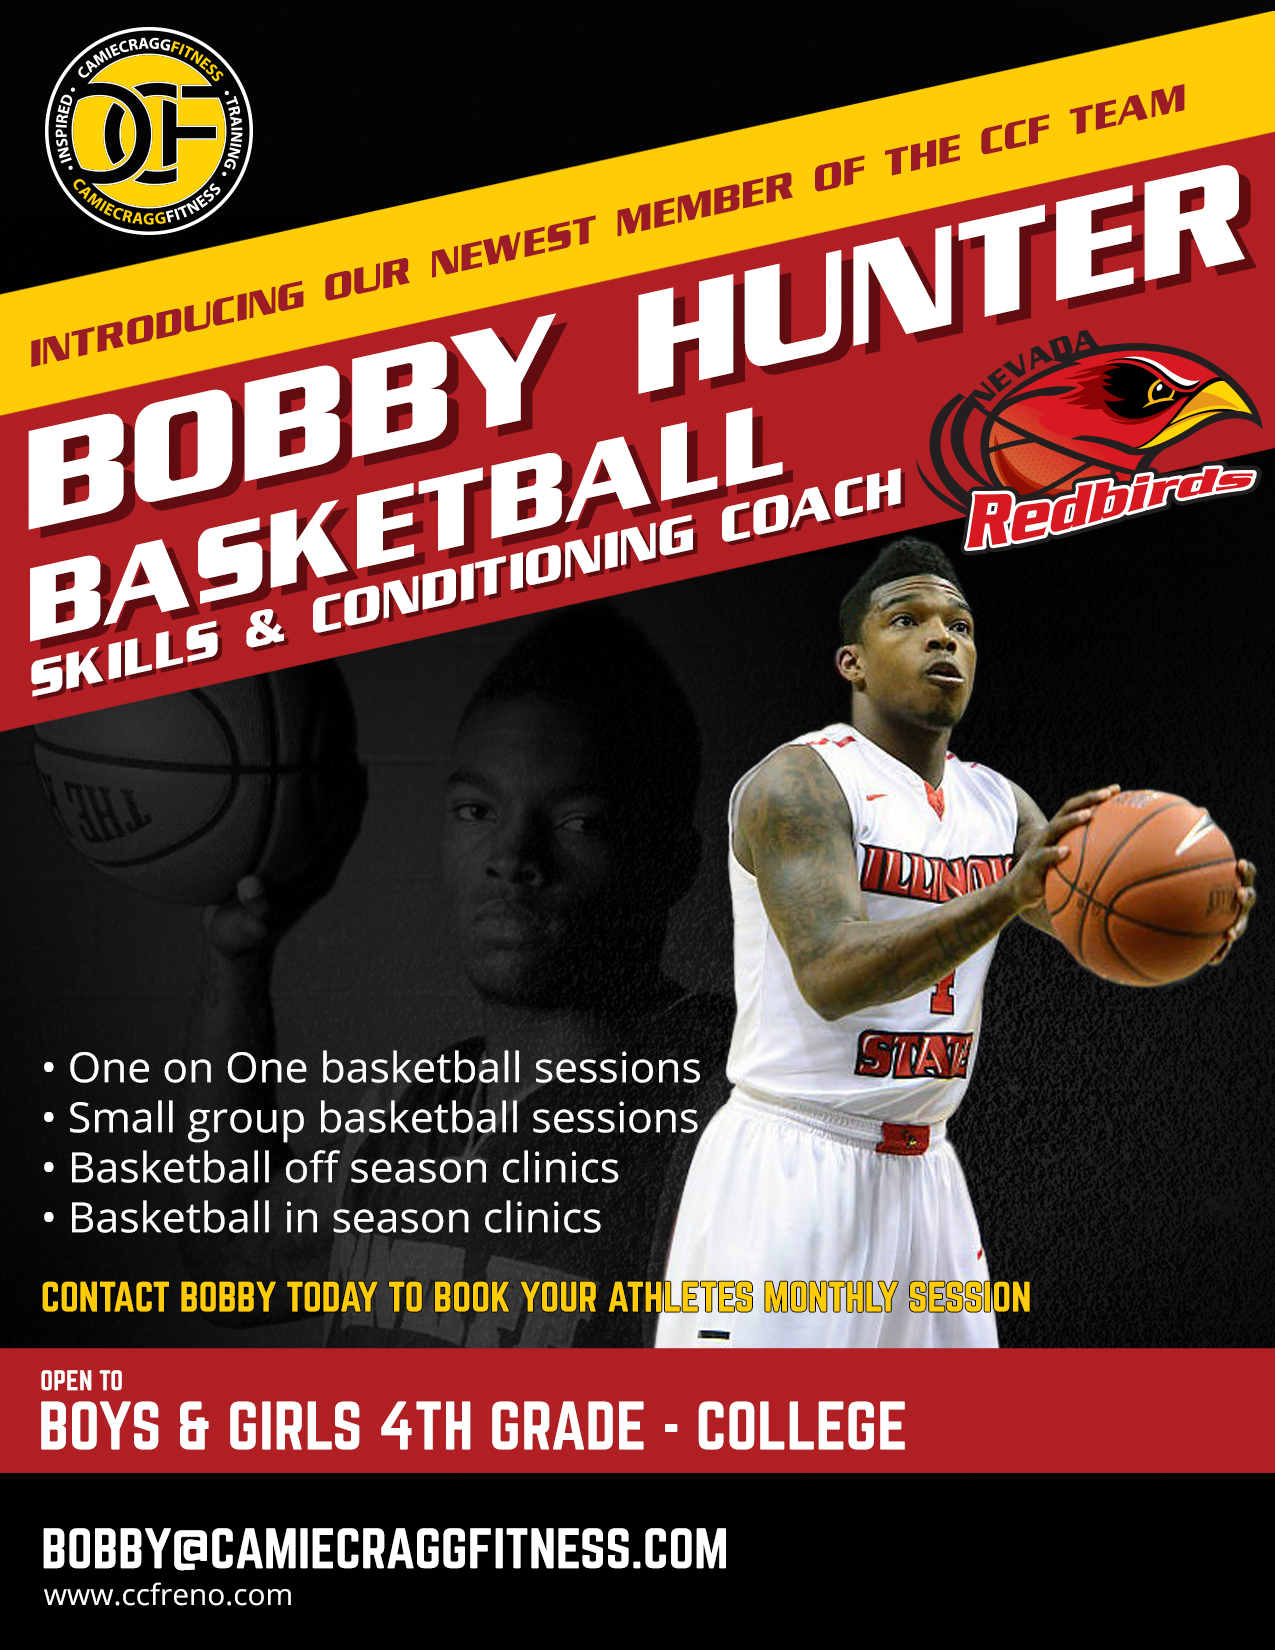 Bobby Hunter Basketball Trainer and Coach